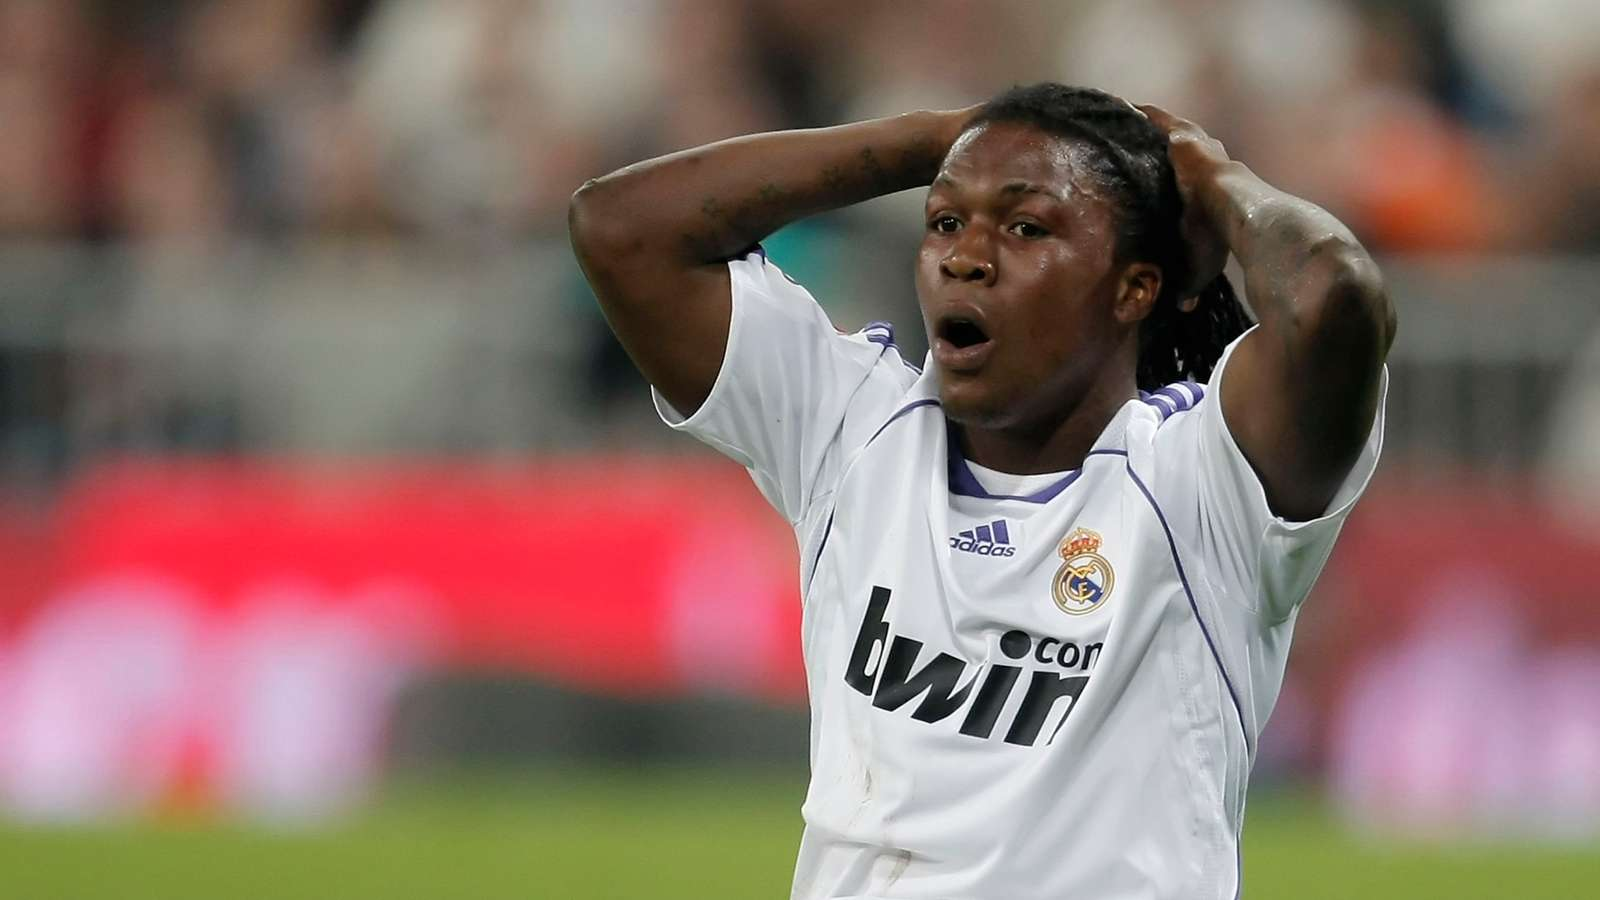 Royston Drenthe: From Real Madrid to Rap and Third Division